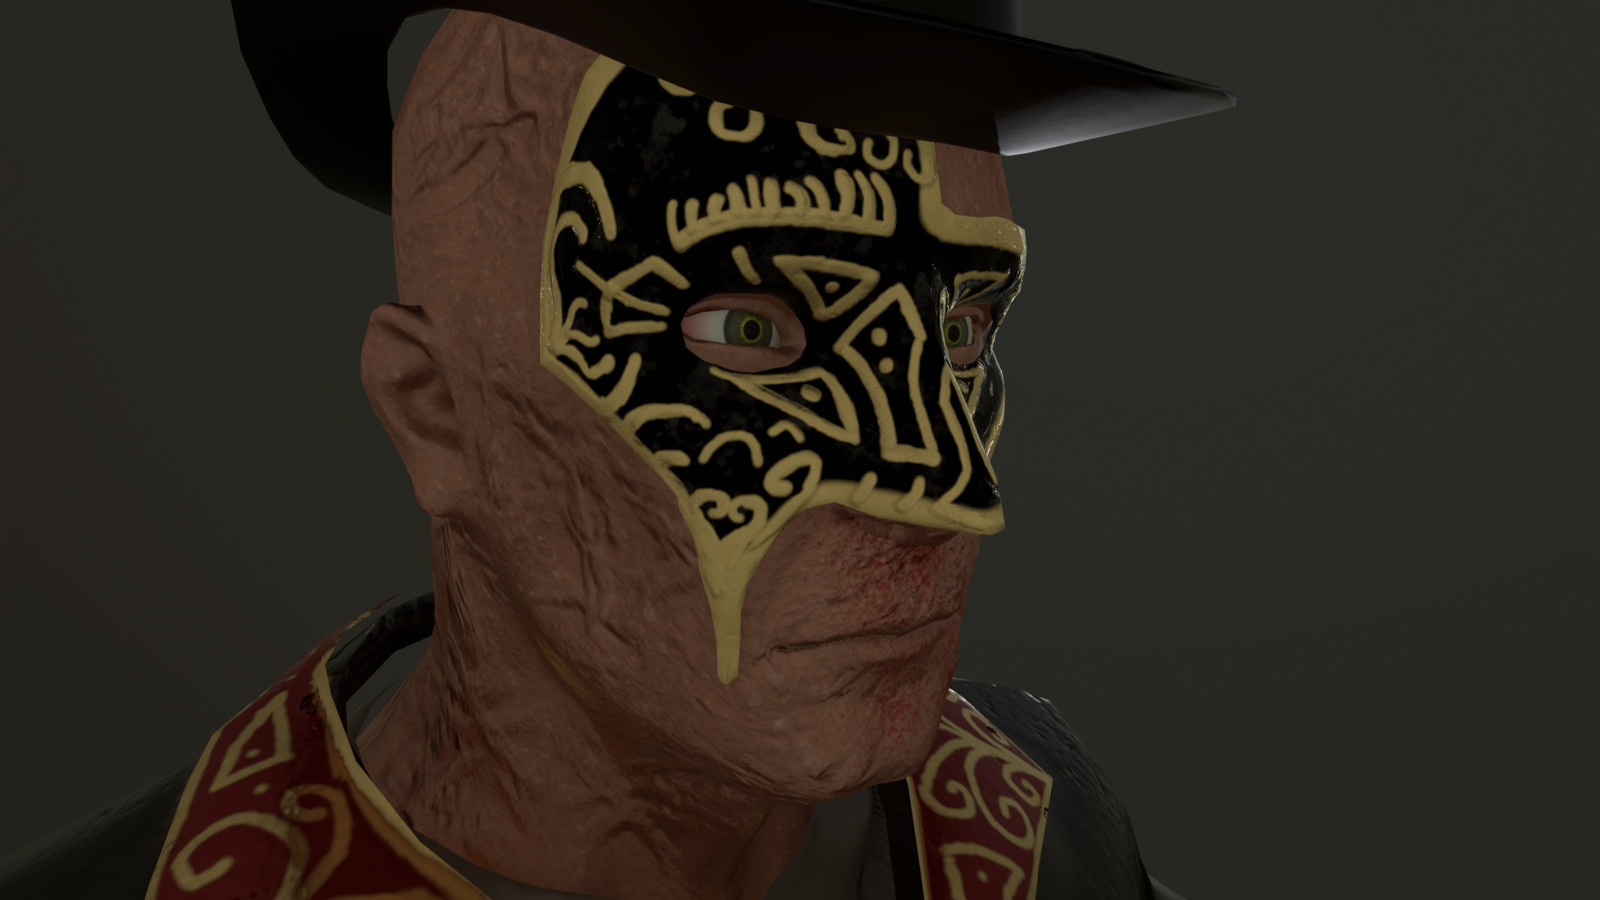 Face Detail & Masquerade Mask (Right Side)